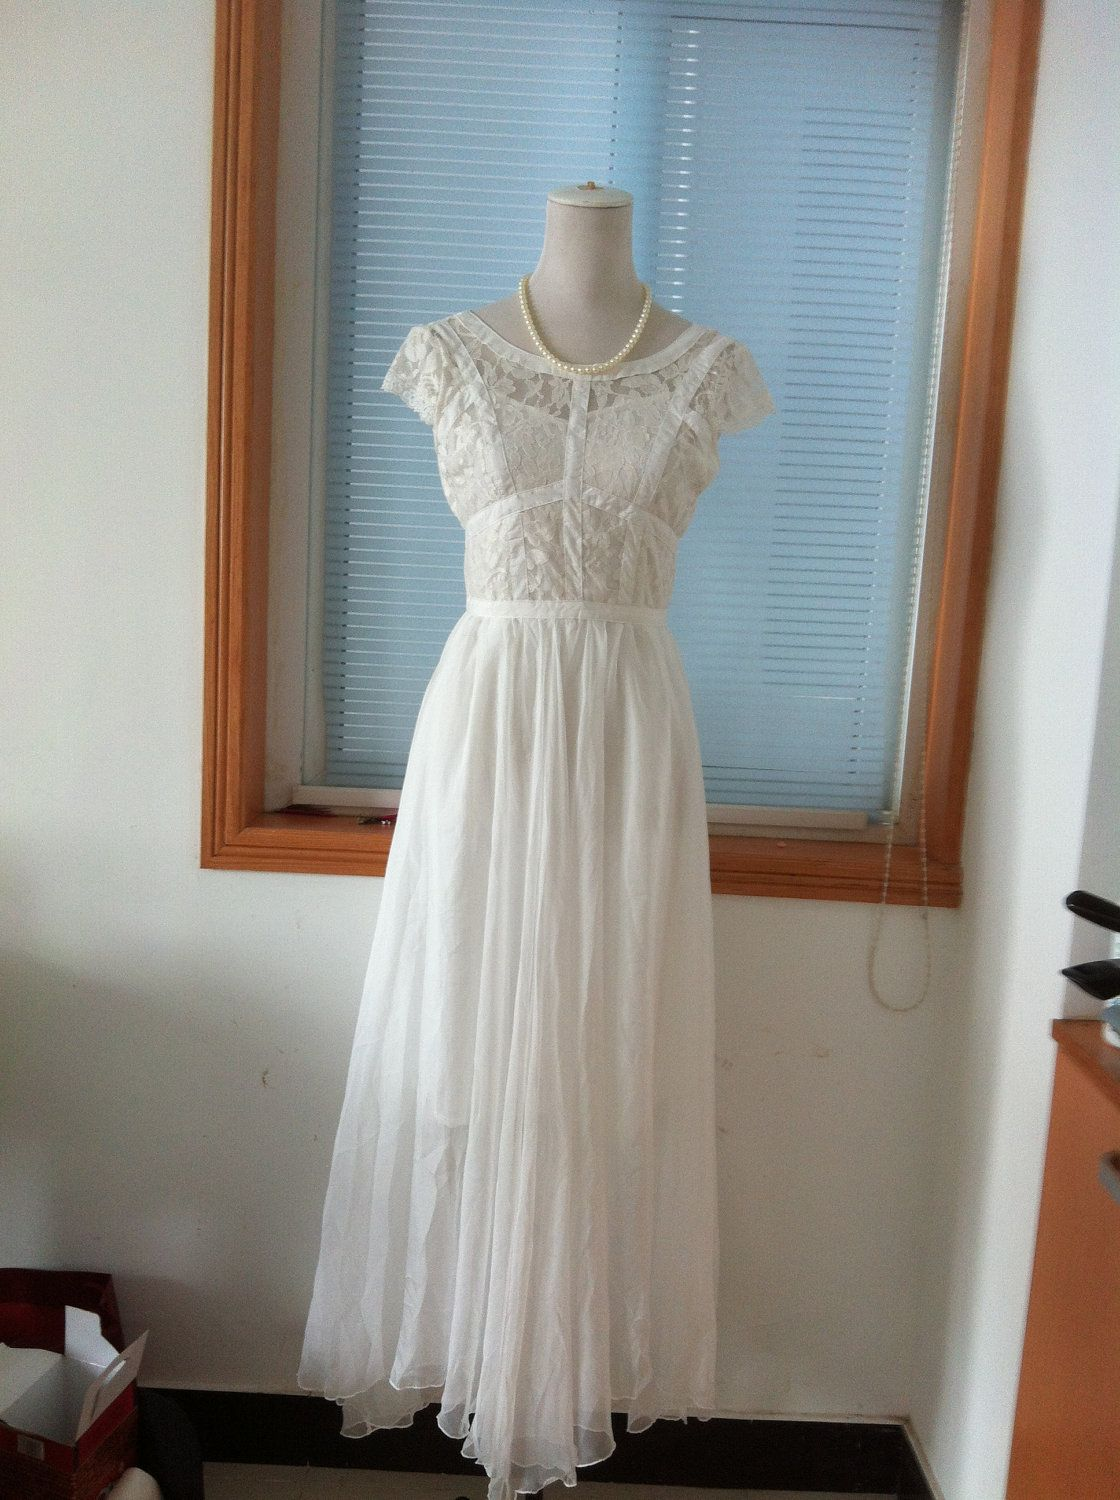 White black lace wedding dress chiffon dress cap sleeves maxi long